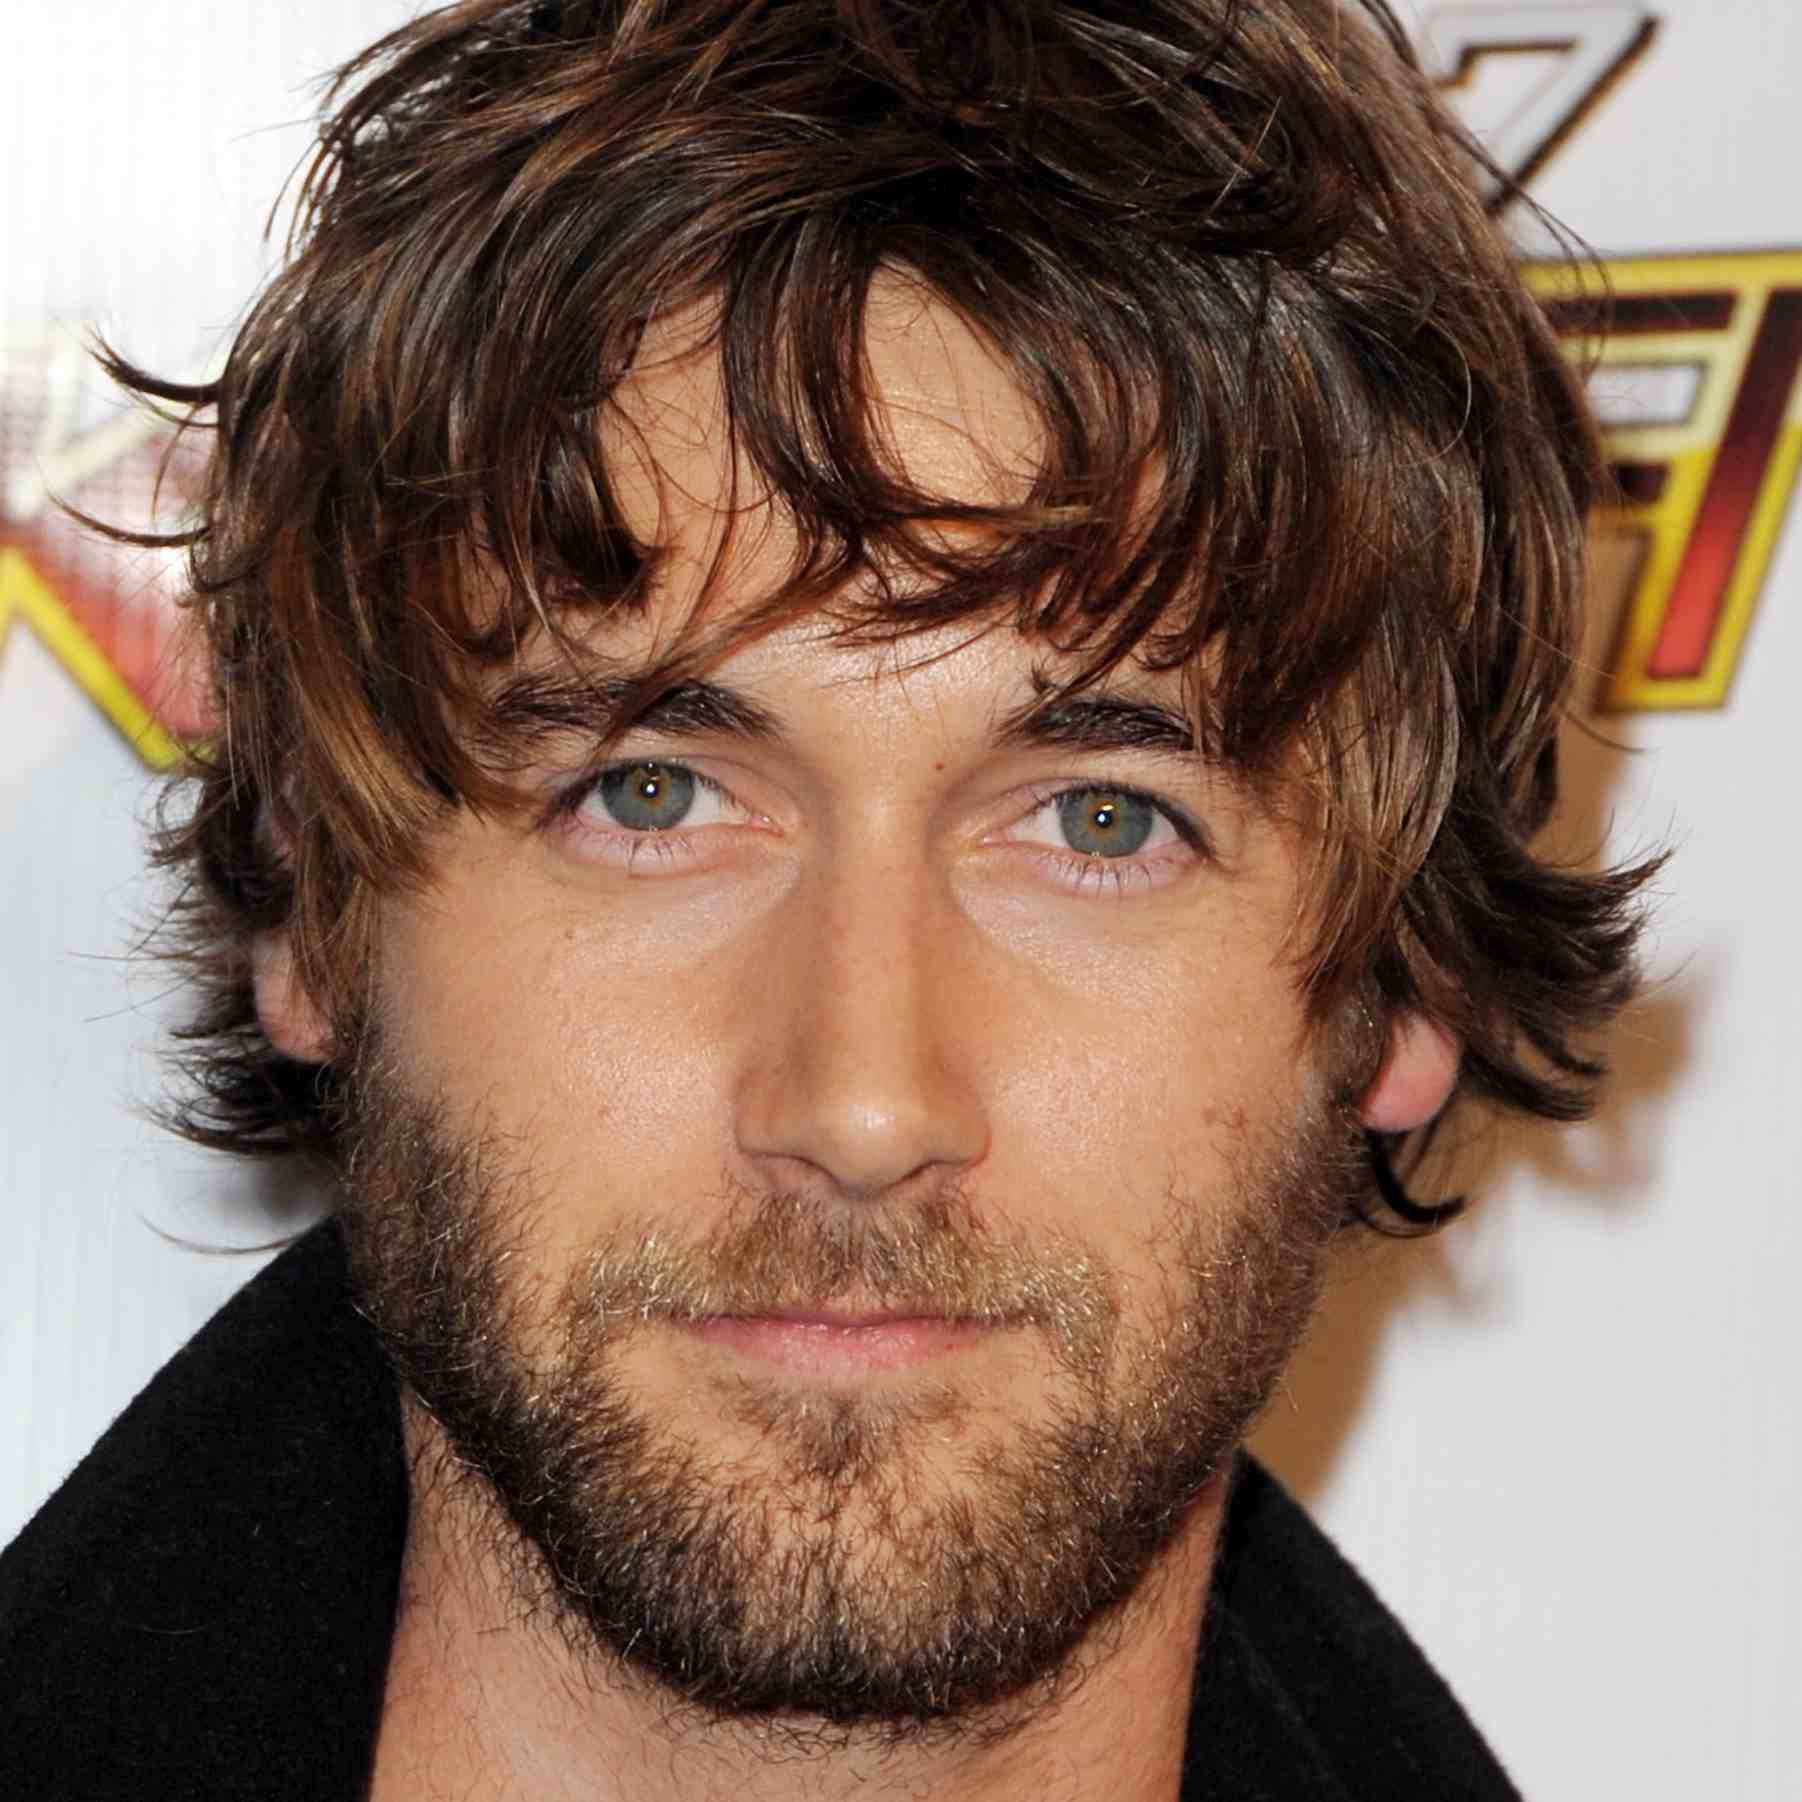 Shaggy-haircut 70+ Outdated Hairstyle Ideas Coming Back in 2021